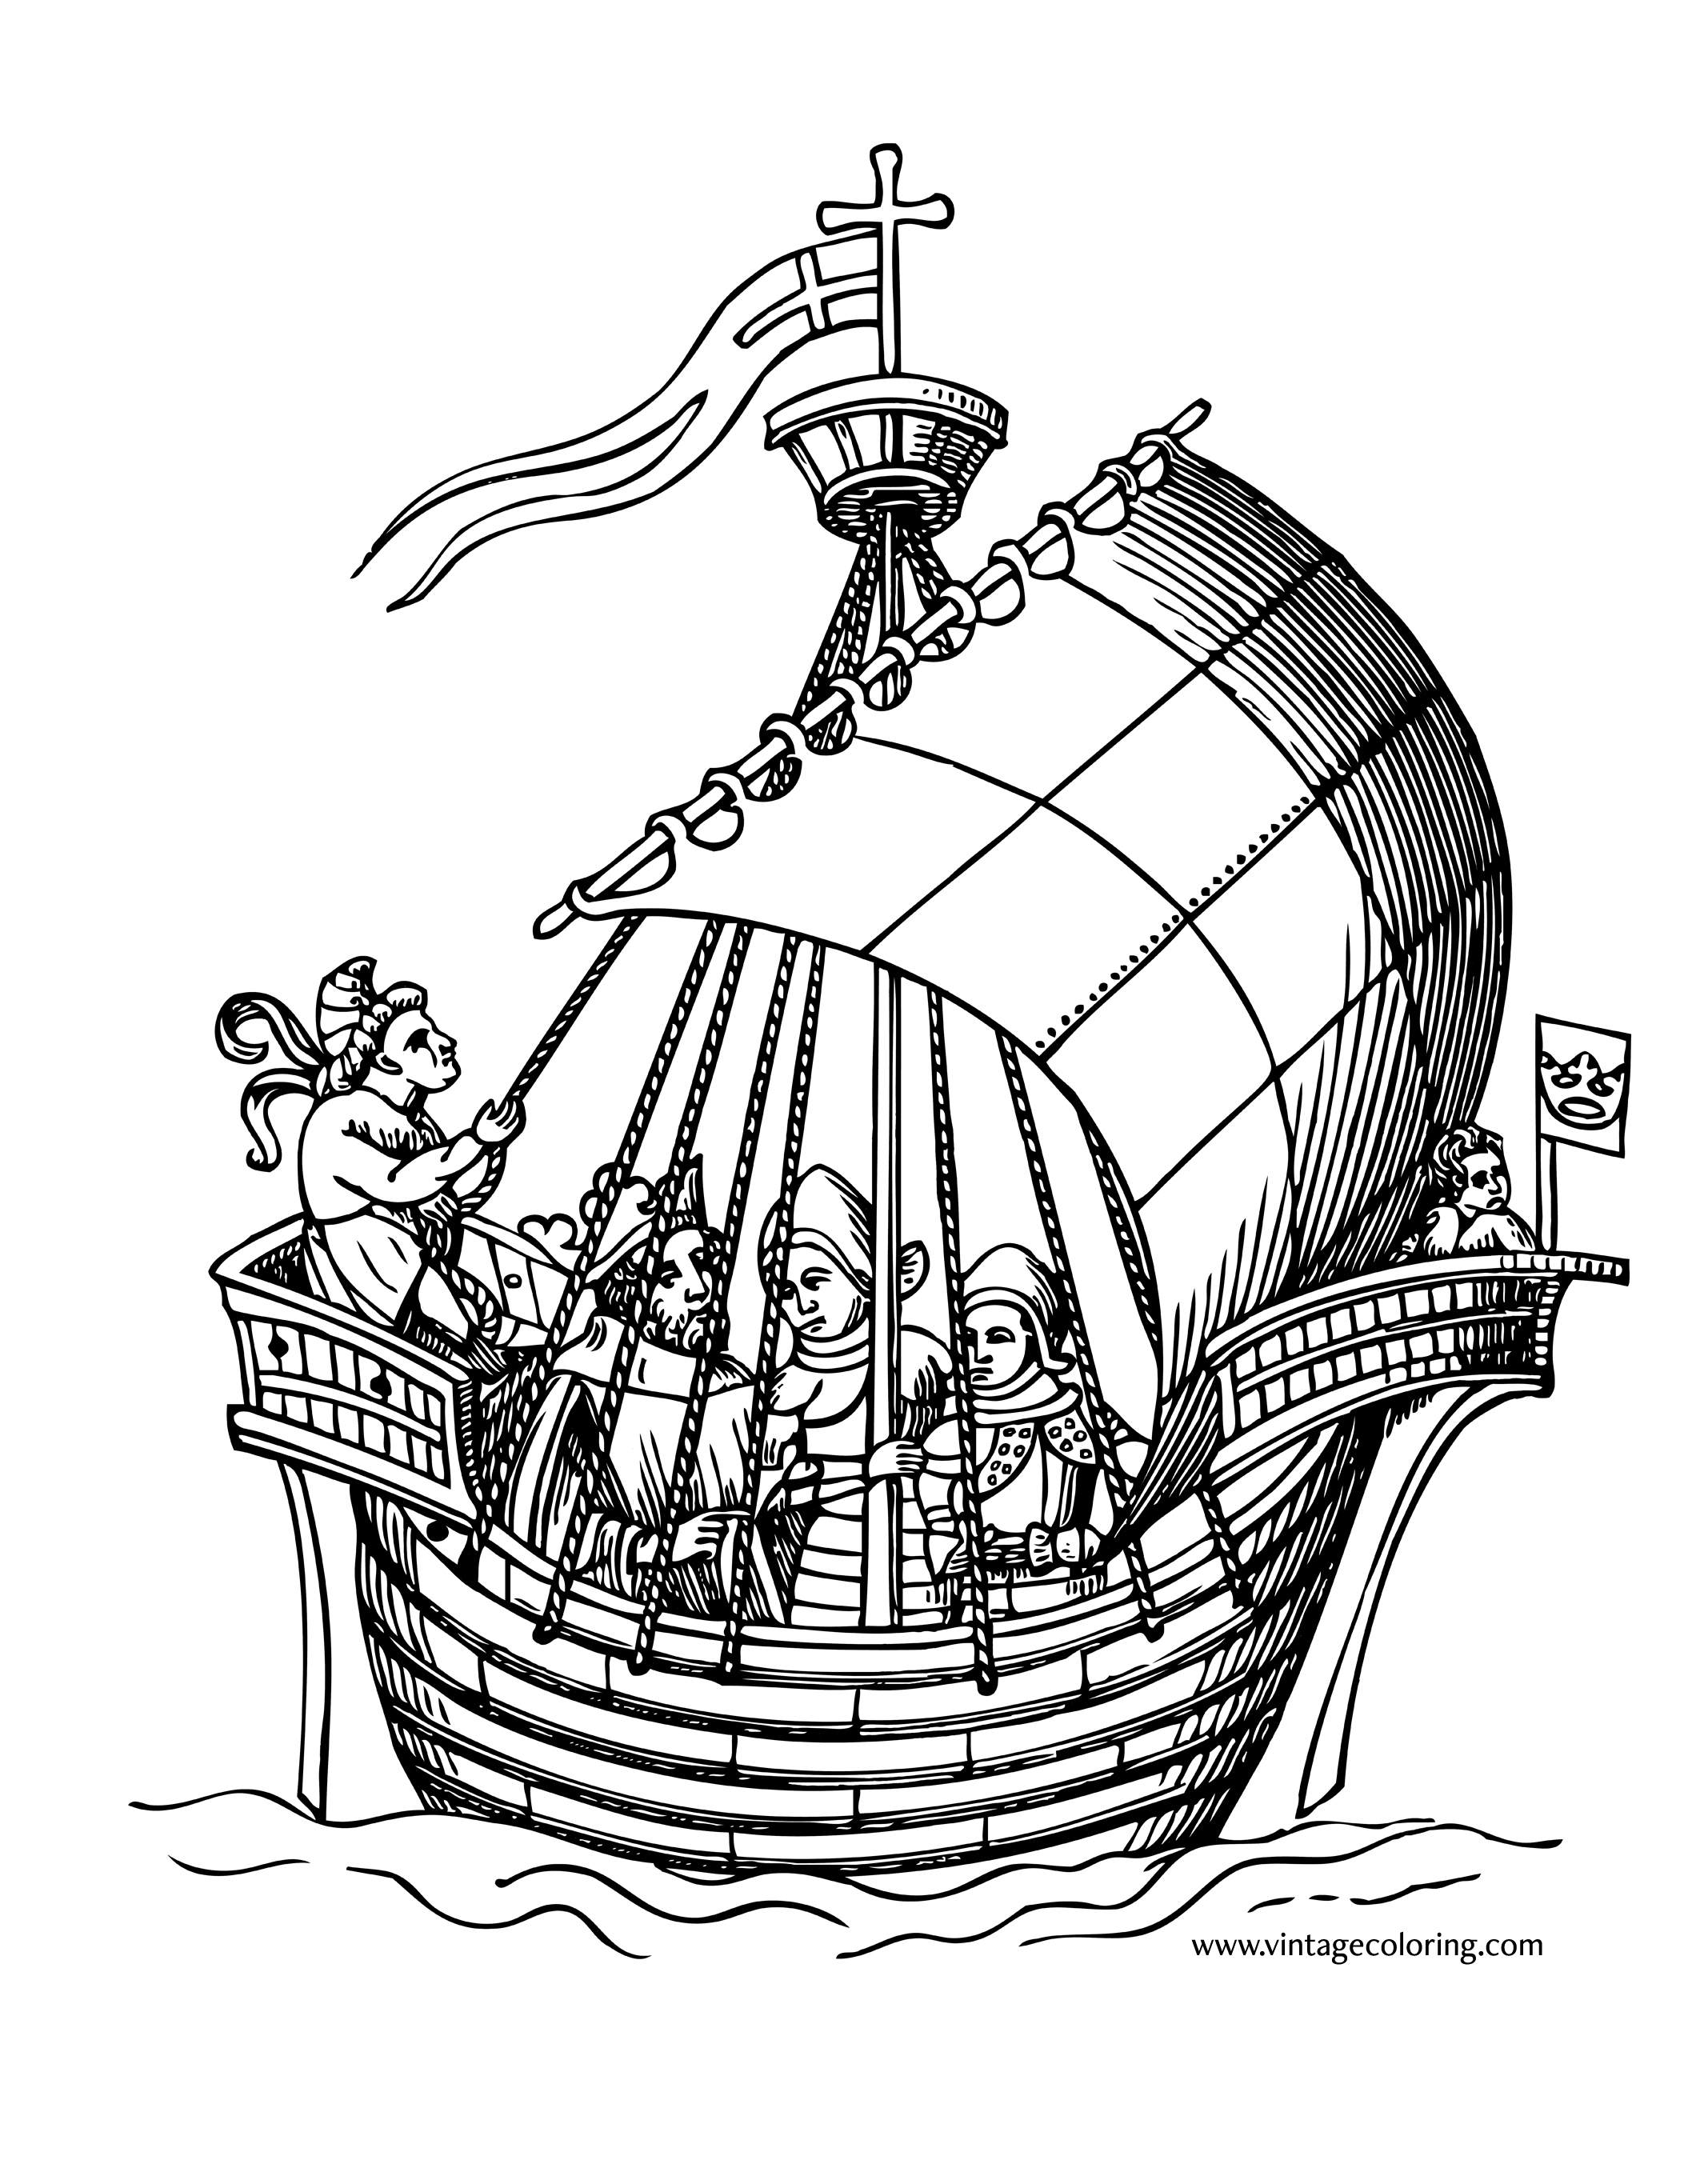 coloring ship ship of knights a free vintage coloring page coloring ship